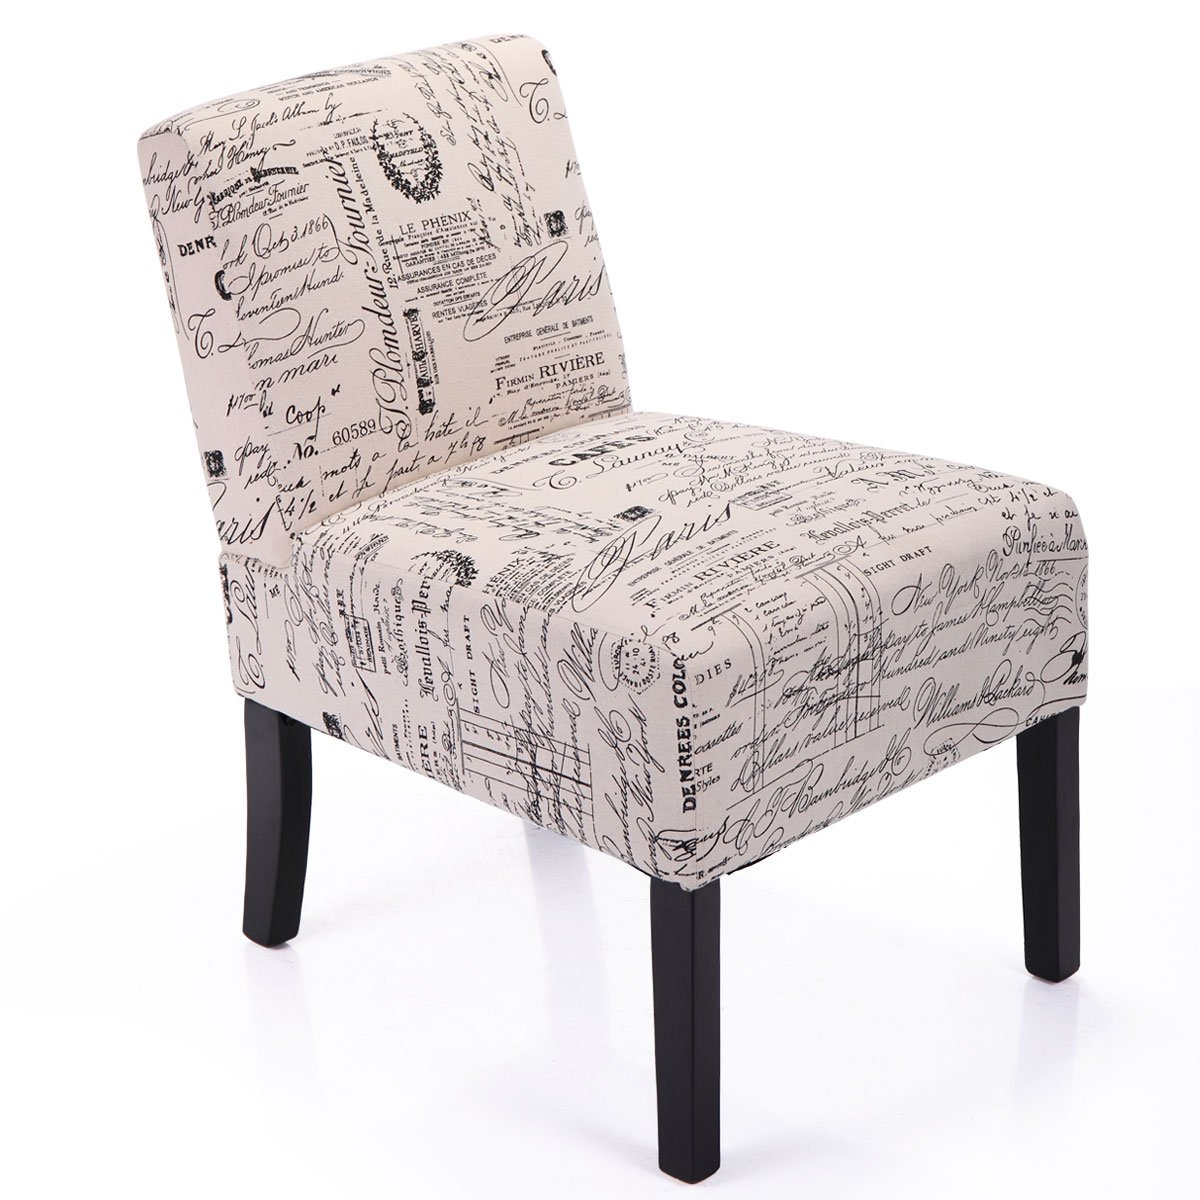 LAZYMOON Leisure Armless Chair Modern Contemporary Upholstered Single Fabric Couch Seat Accent Chair Living Room Chair, French Script